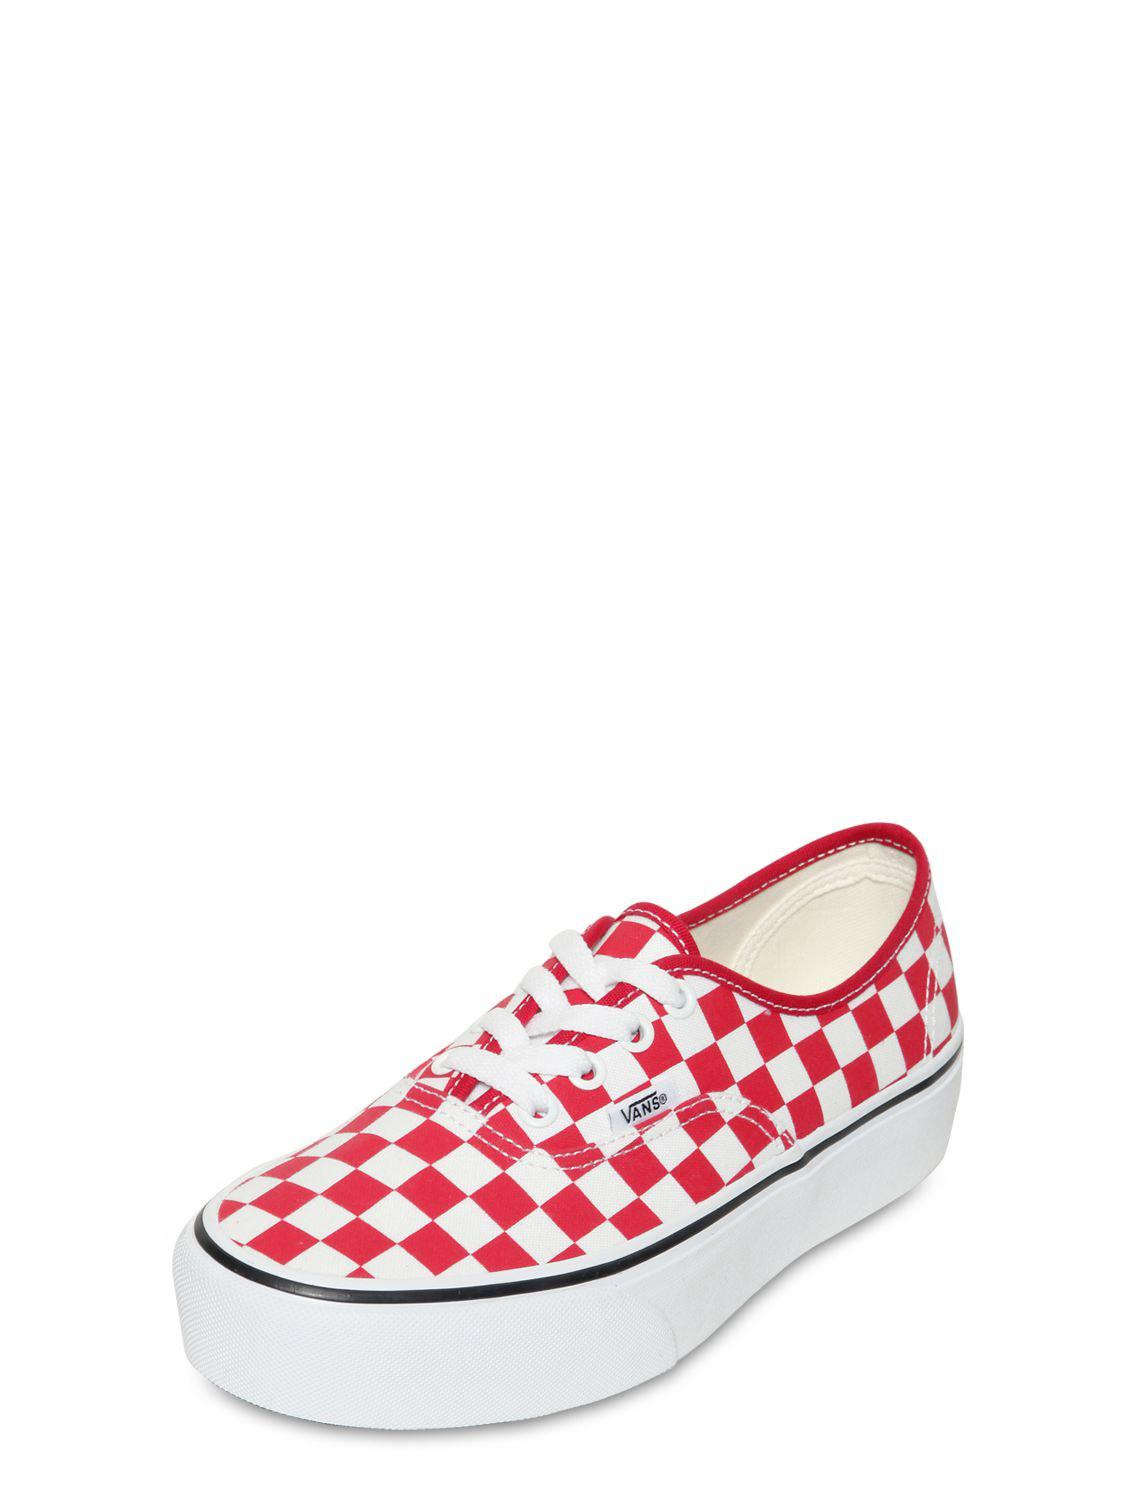 97e533706c Vans Authentic Platform Checkered Sneakers in Red - Save 8% - Lyst